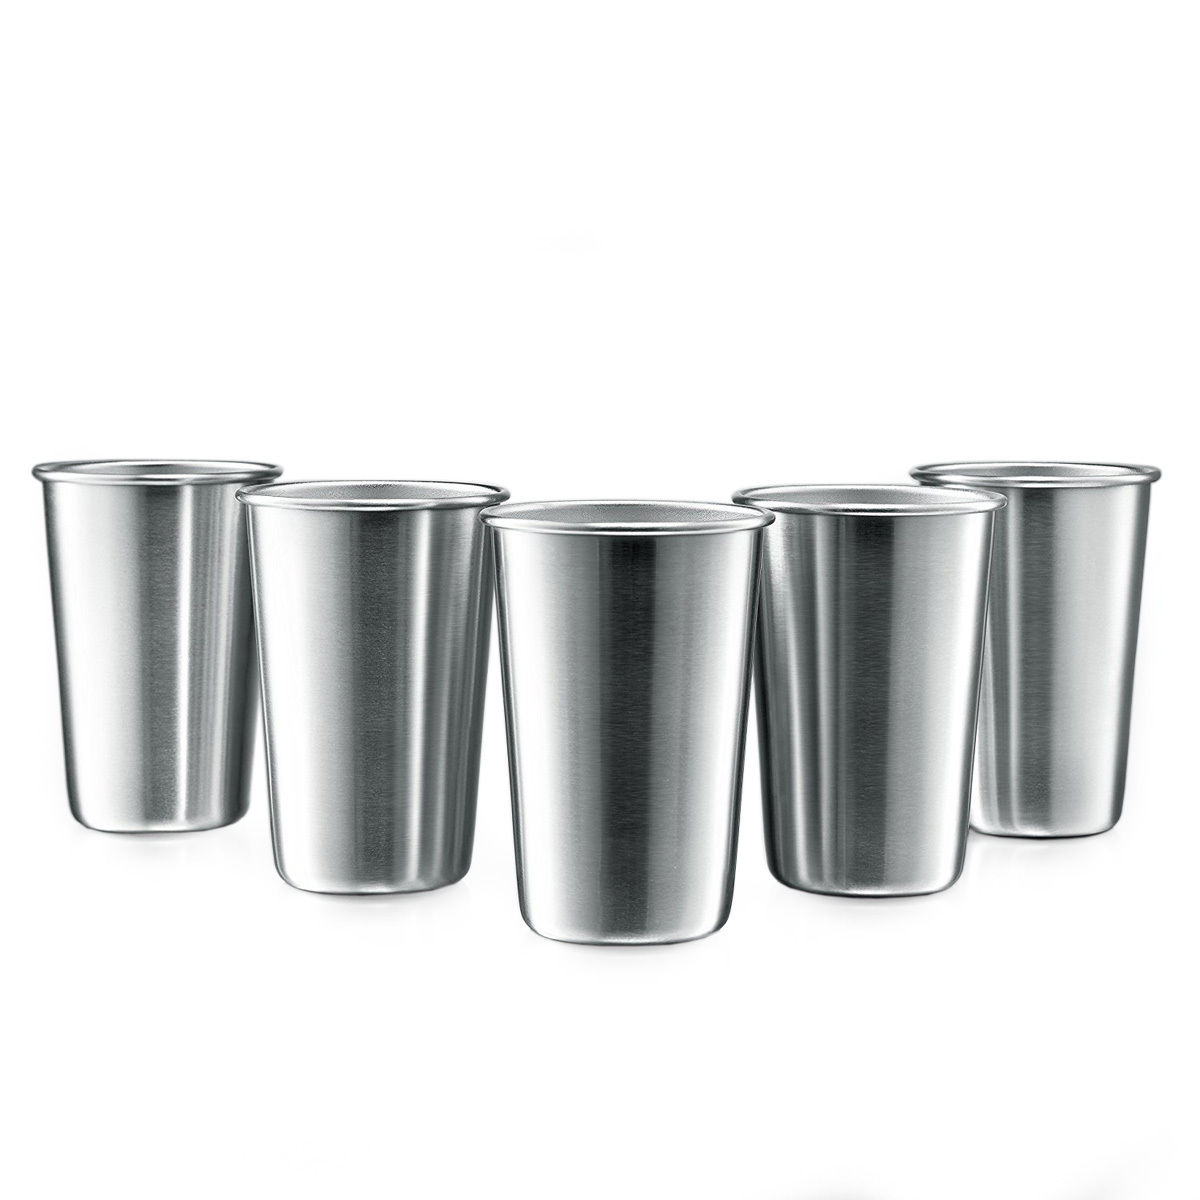 Online Techome 5 Pcs Stainless Steel Pint Cups Beer Tumblers Coffee Mugs Stackable Whole Dropshipping Aliexpress Mobile